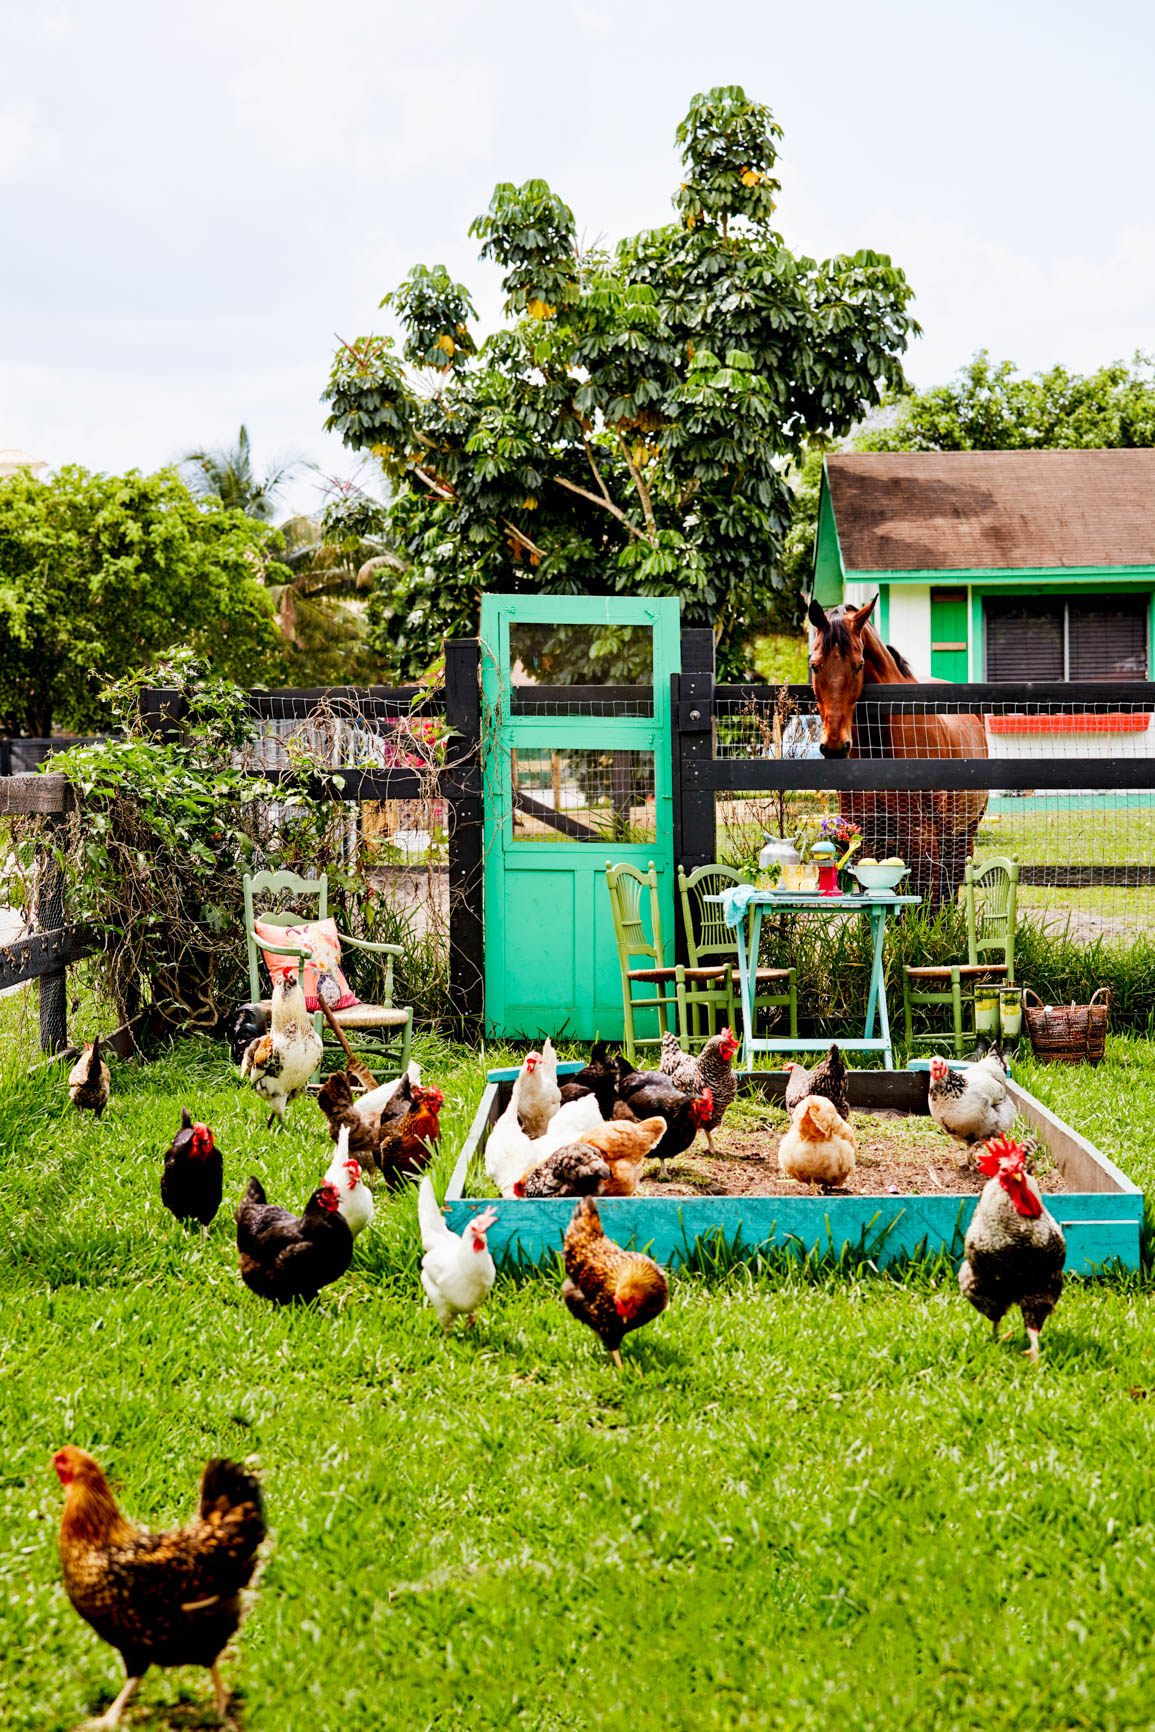 free-range chickens in the garden